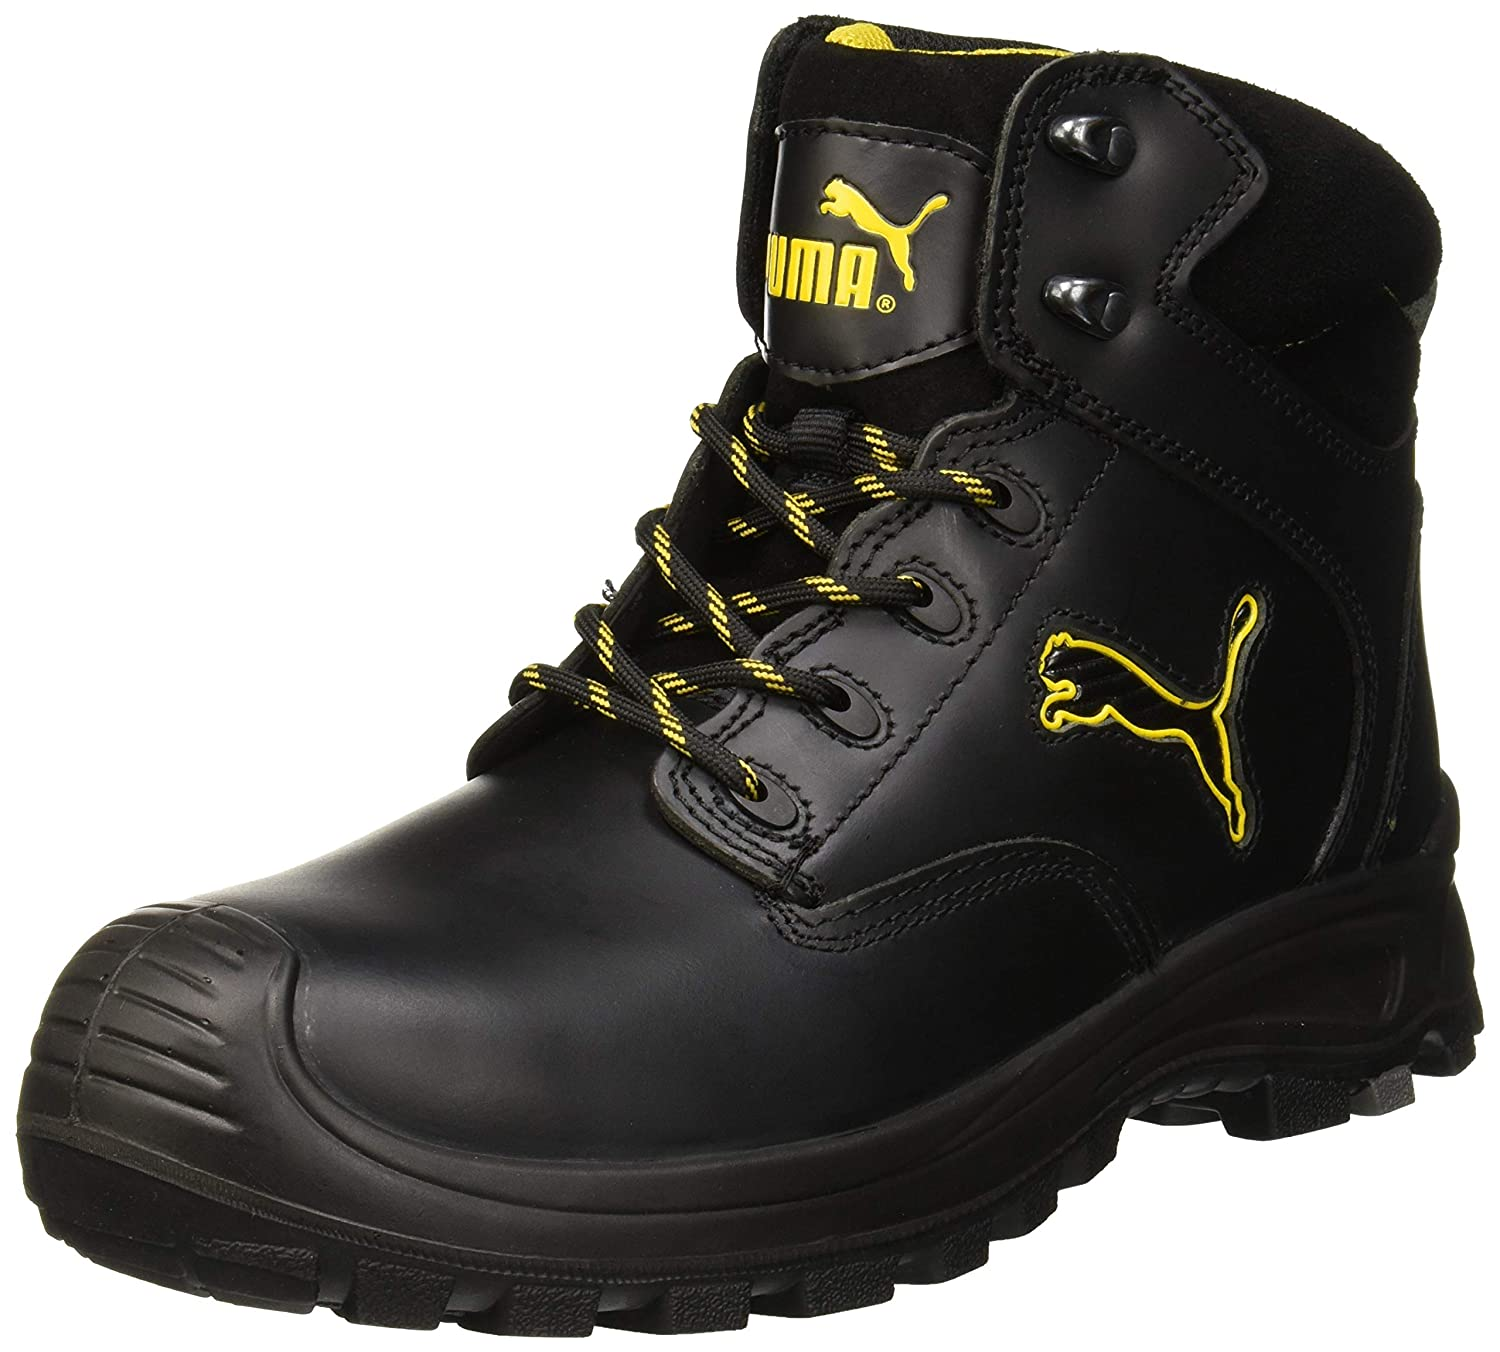 093c3535 Puma Safety Borneo Black Mid S3 HRO SRC, Unisex Adults' Safety Shoes ...